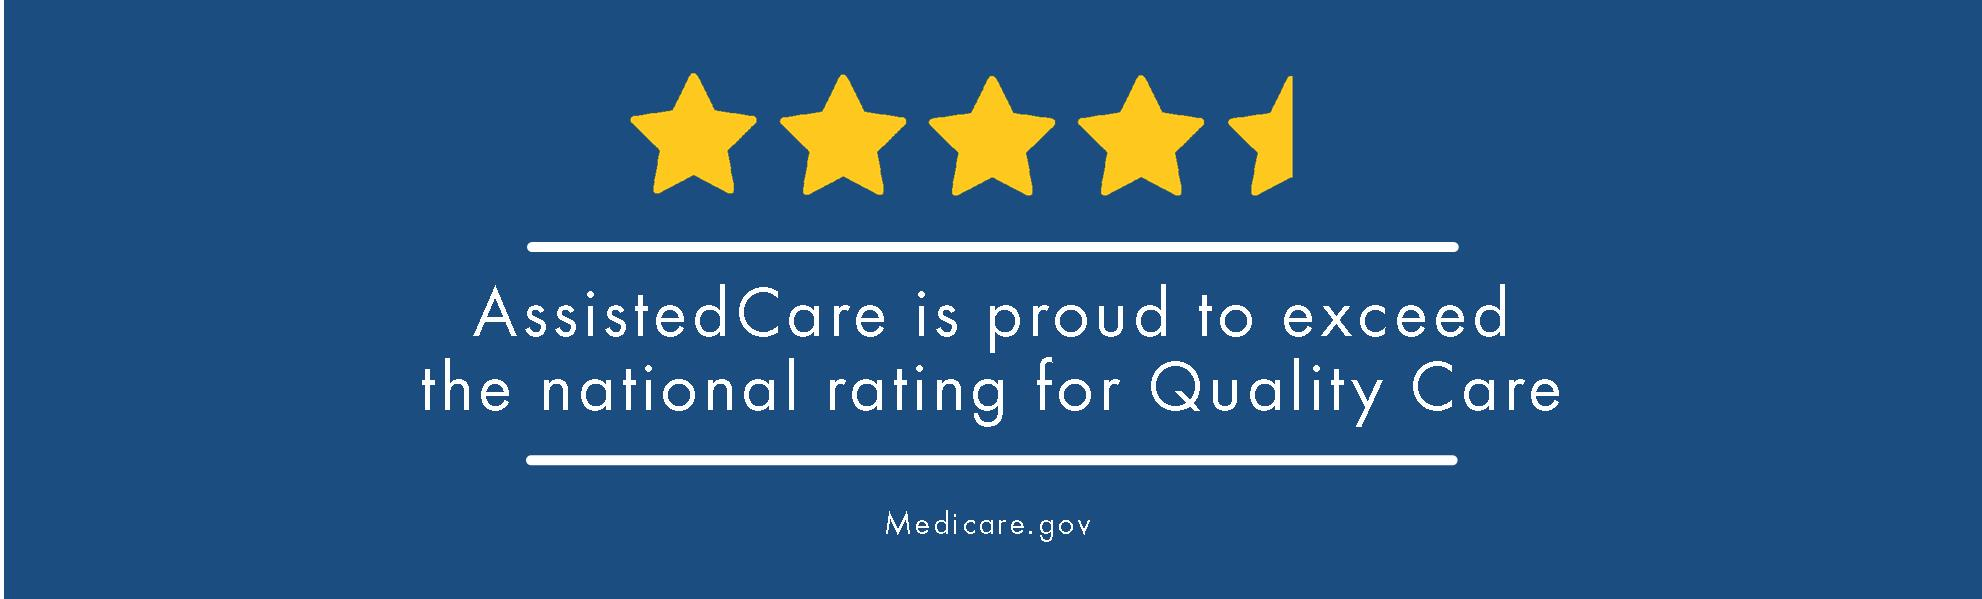 AssistedCare is proud to exceed the national rating for quality care. - medicare.gov